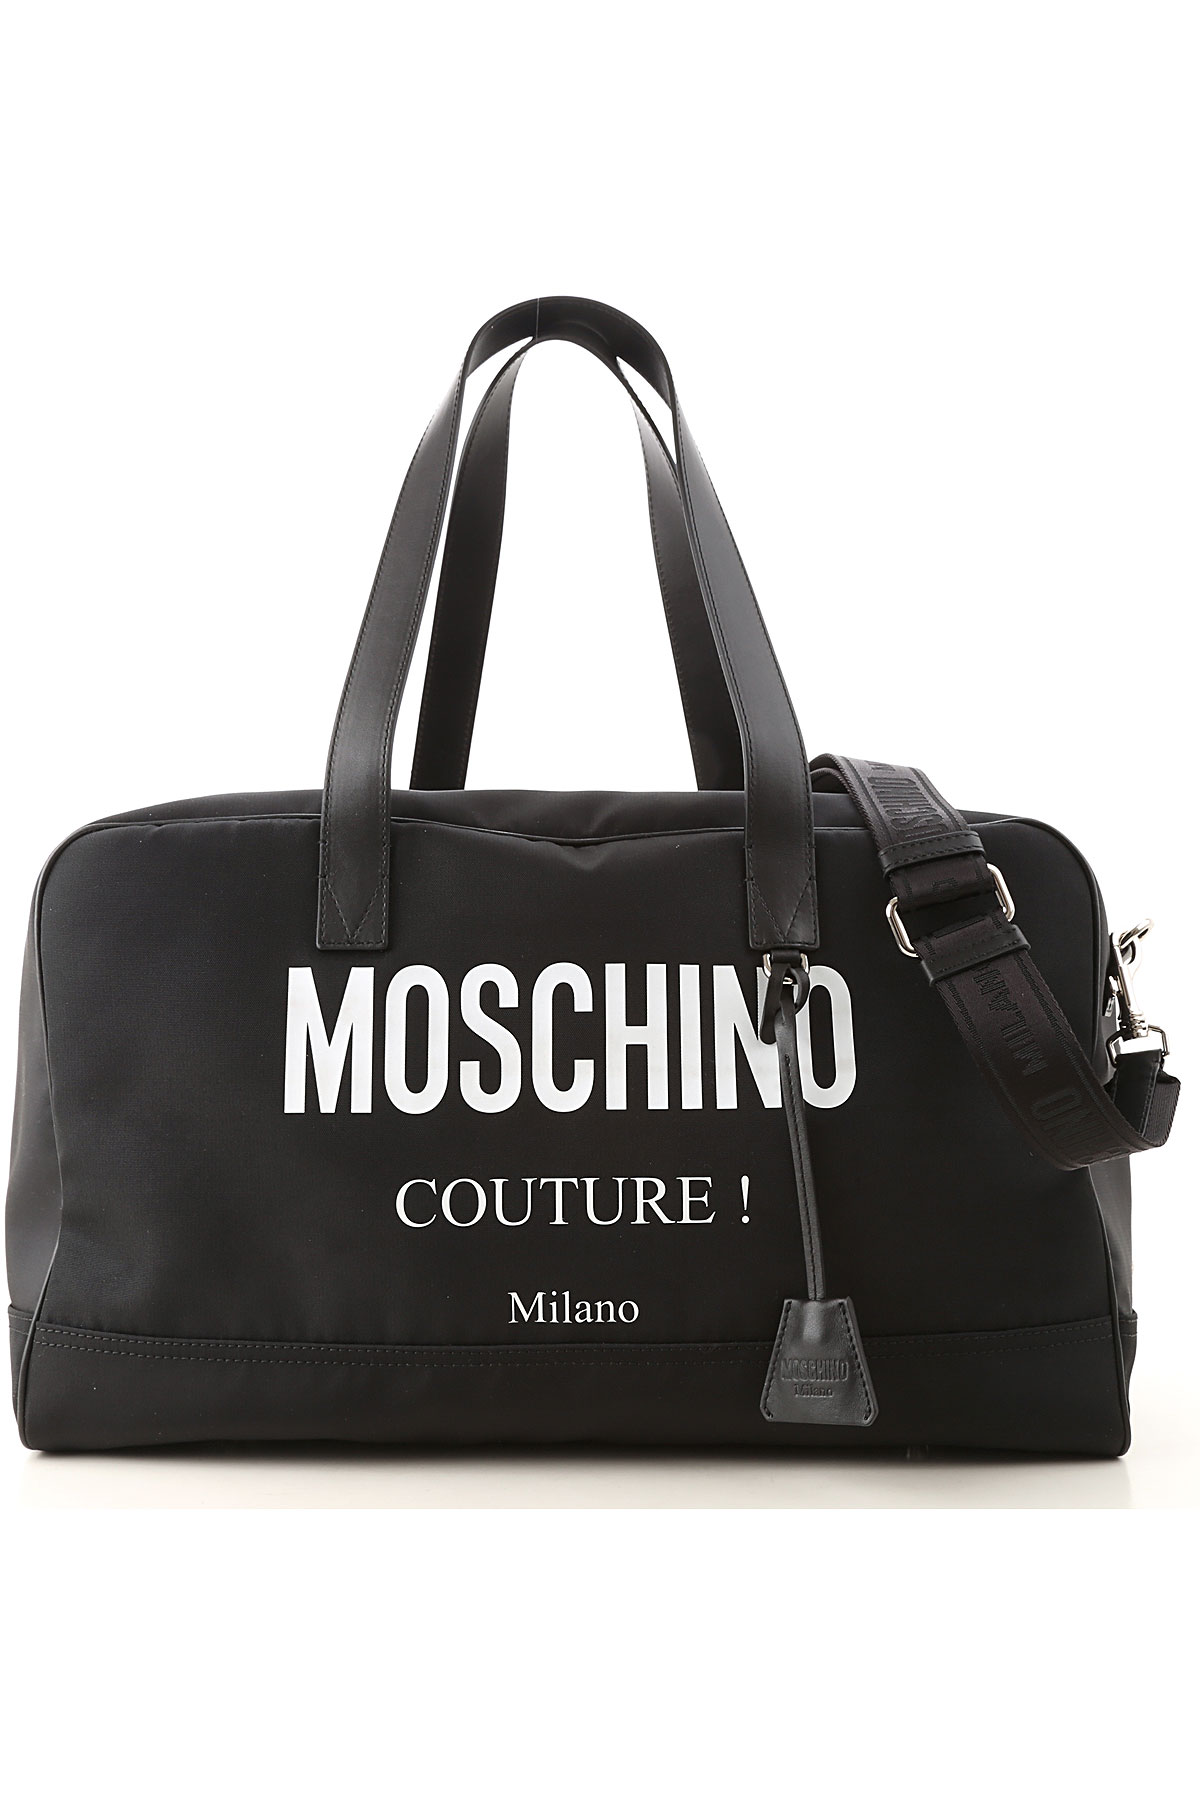 Moschino Weekender Duffel Bag for Men On Sale, Black, Synthetic Fiber, 2019